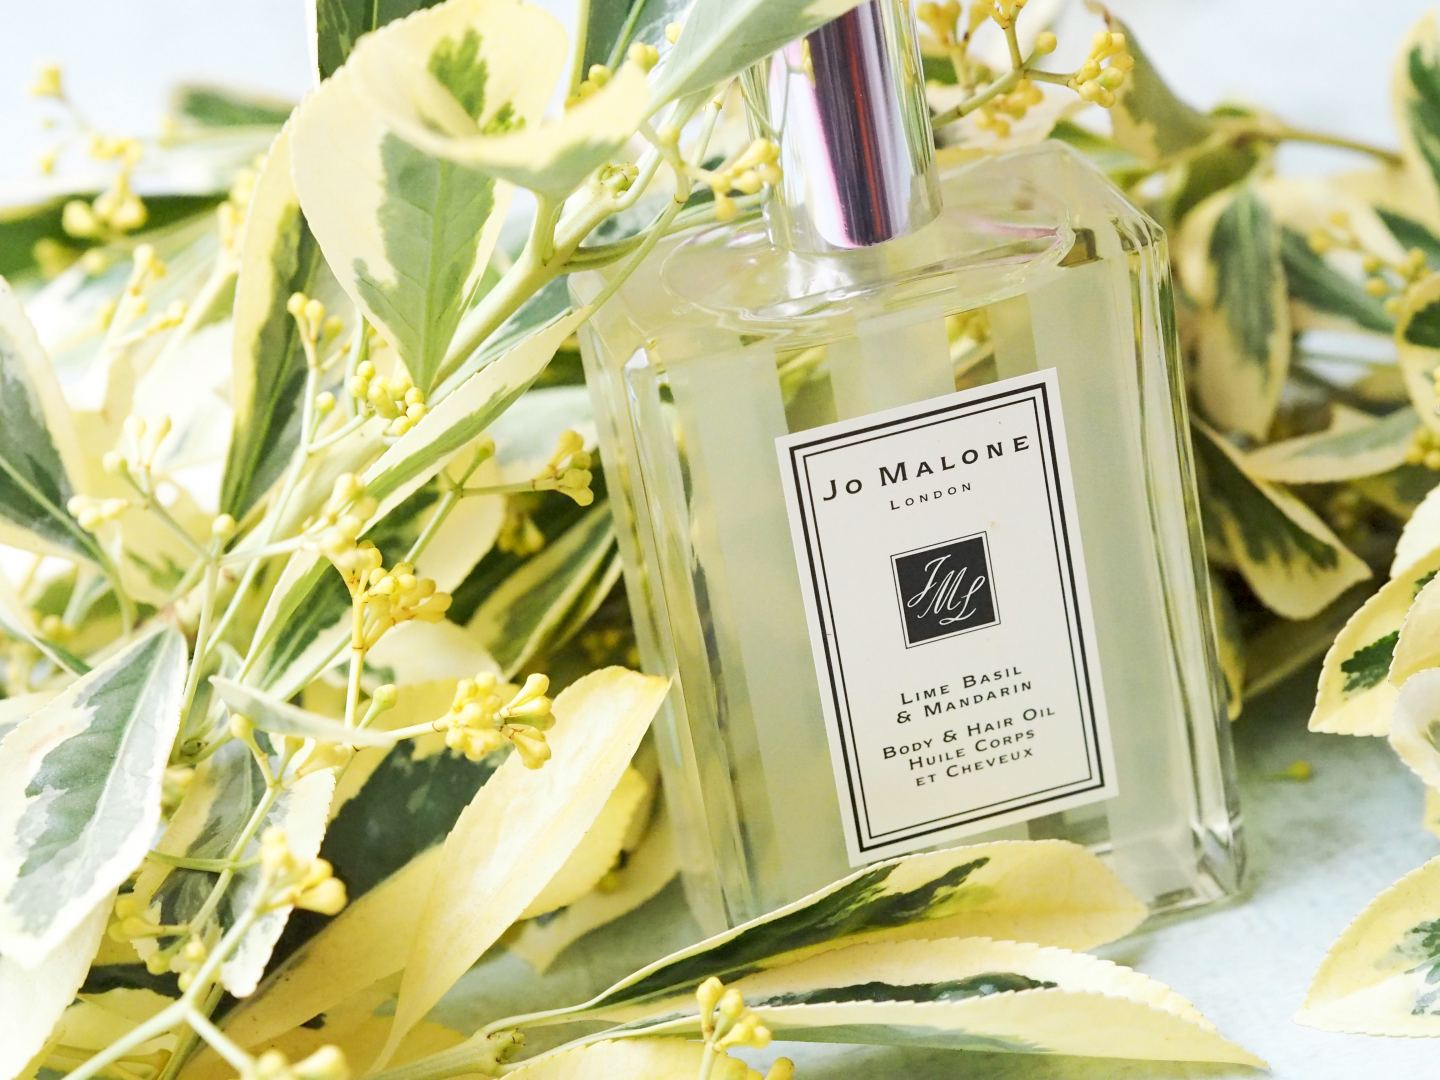 Jo-Malone-London-Lime-Basil-Mandarin-Body-Hair-Oil-new-2018.jpg